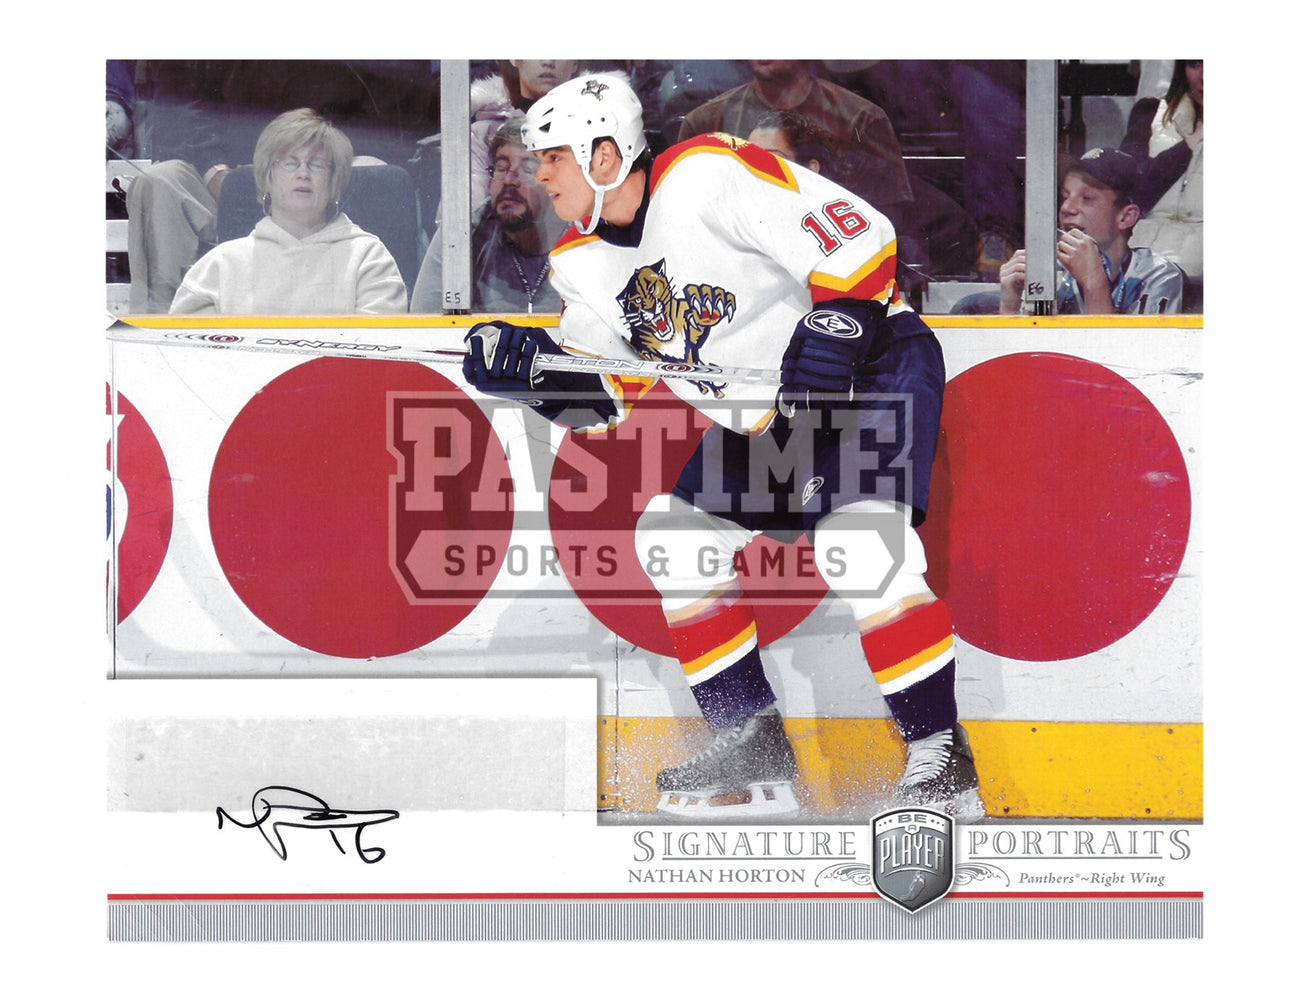 Nathan Horton Autogrpahed 8X10 Florida Panthers Away Jerseey (Signature Portraits) - Pastime Sports & Games